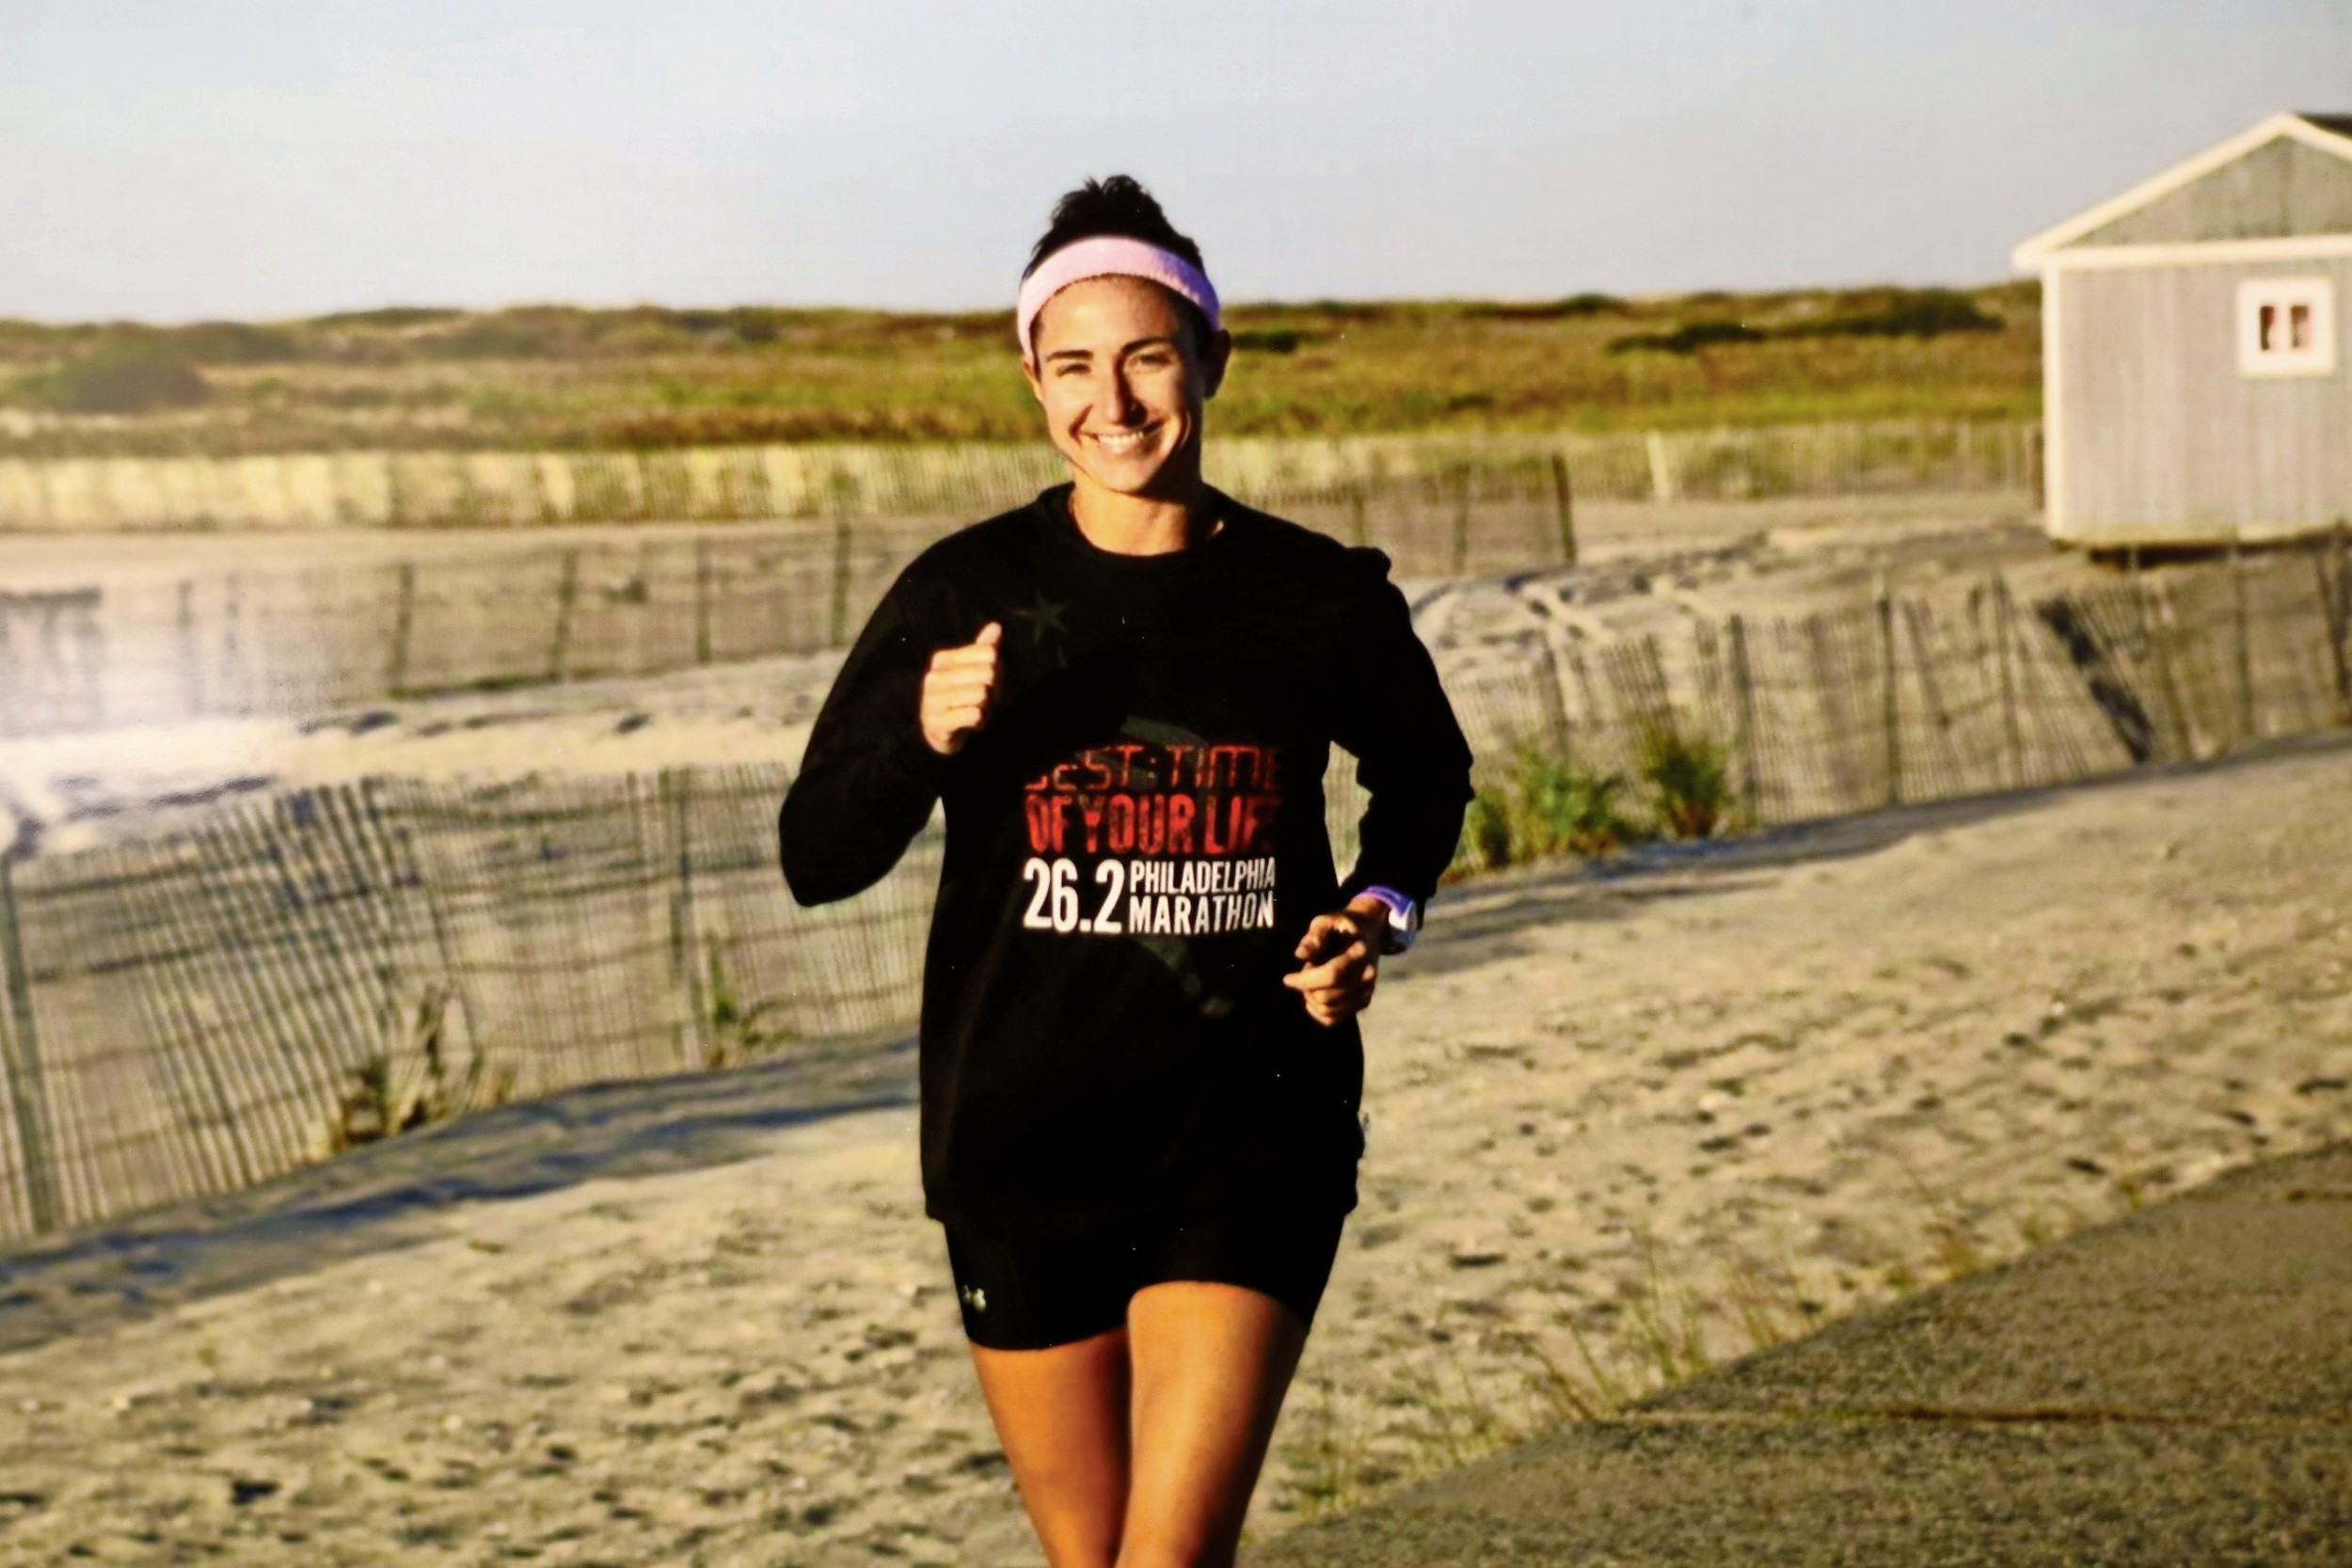 Perno-Grosser competed in the Bethpage Ocean to Sound Relay, sponsored by the Greater Long Island Running Club, at Jones Beach State Park.